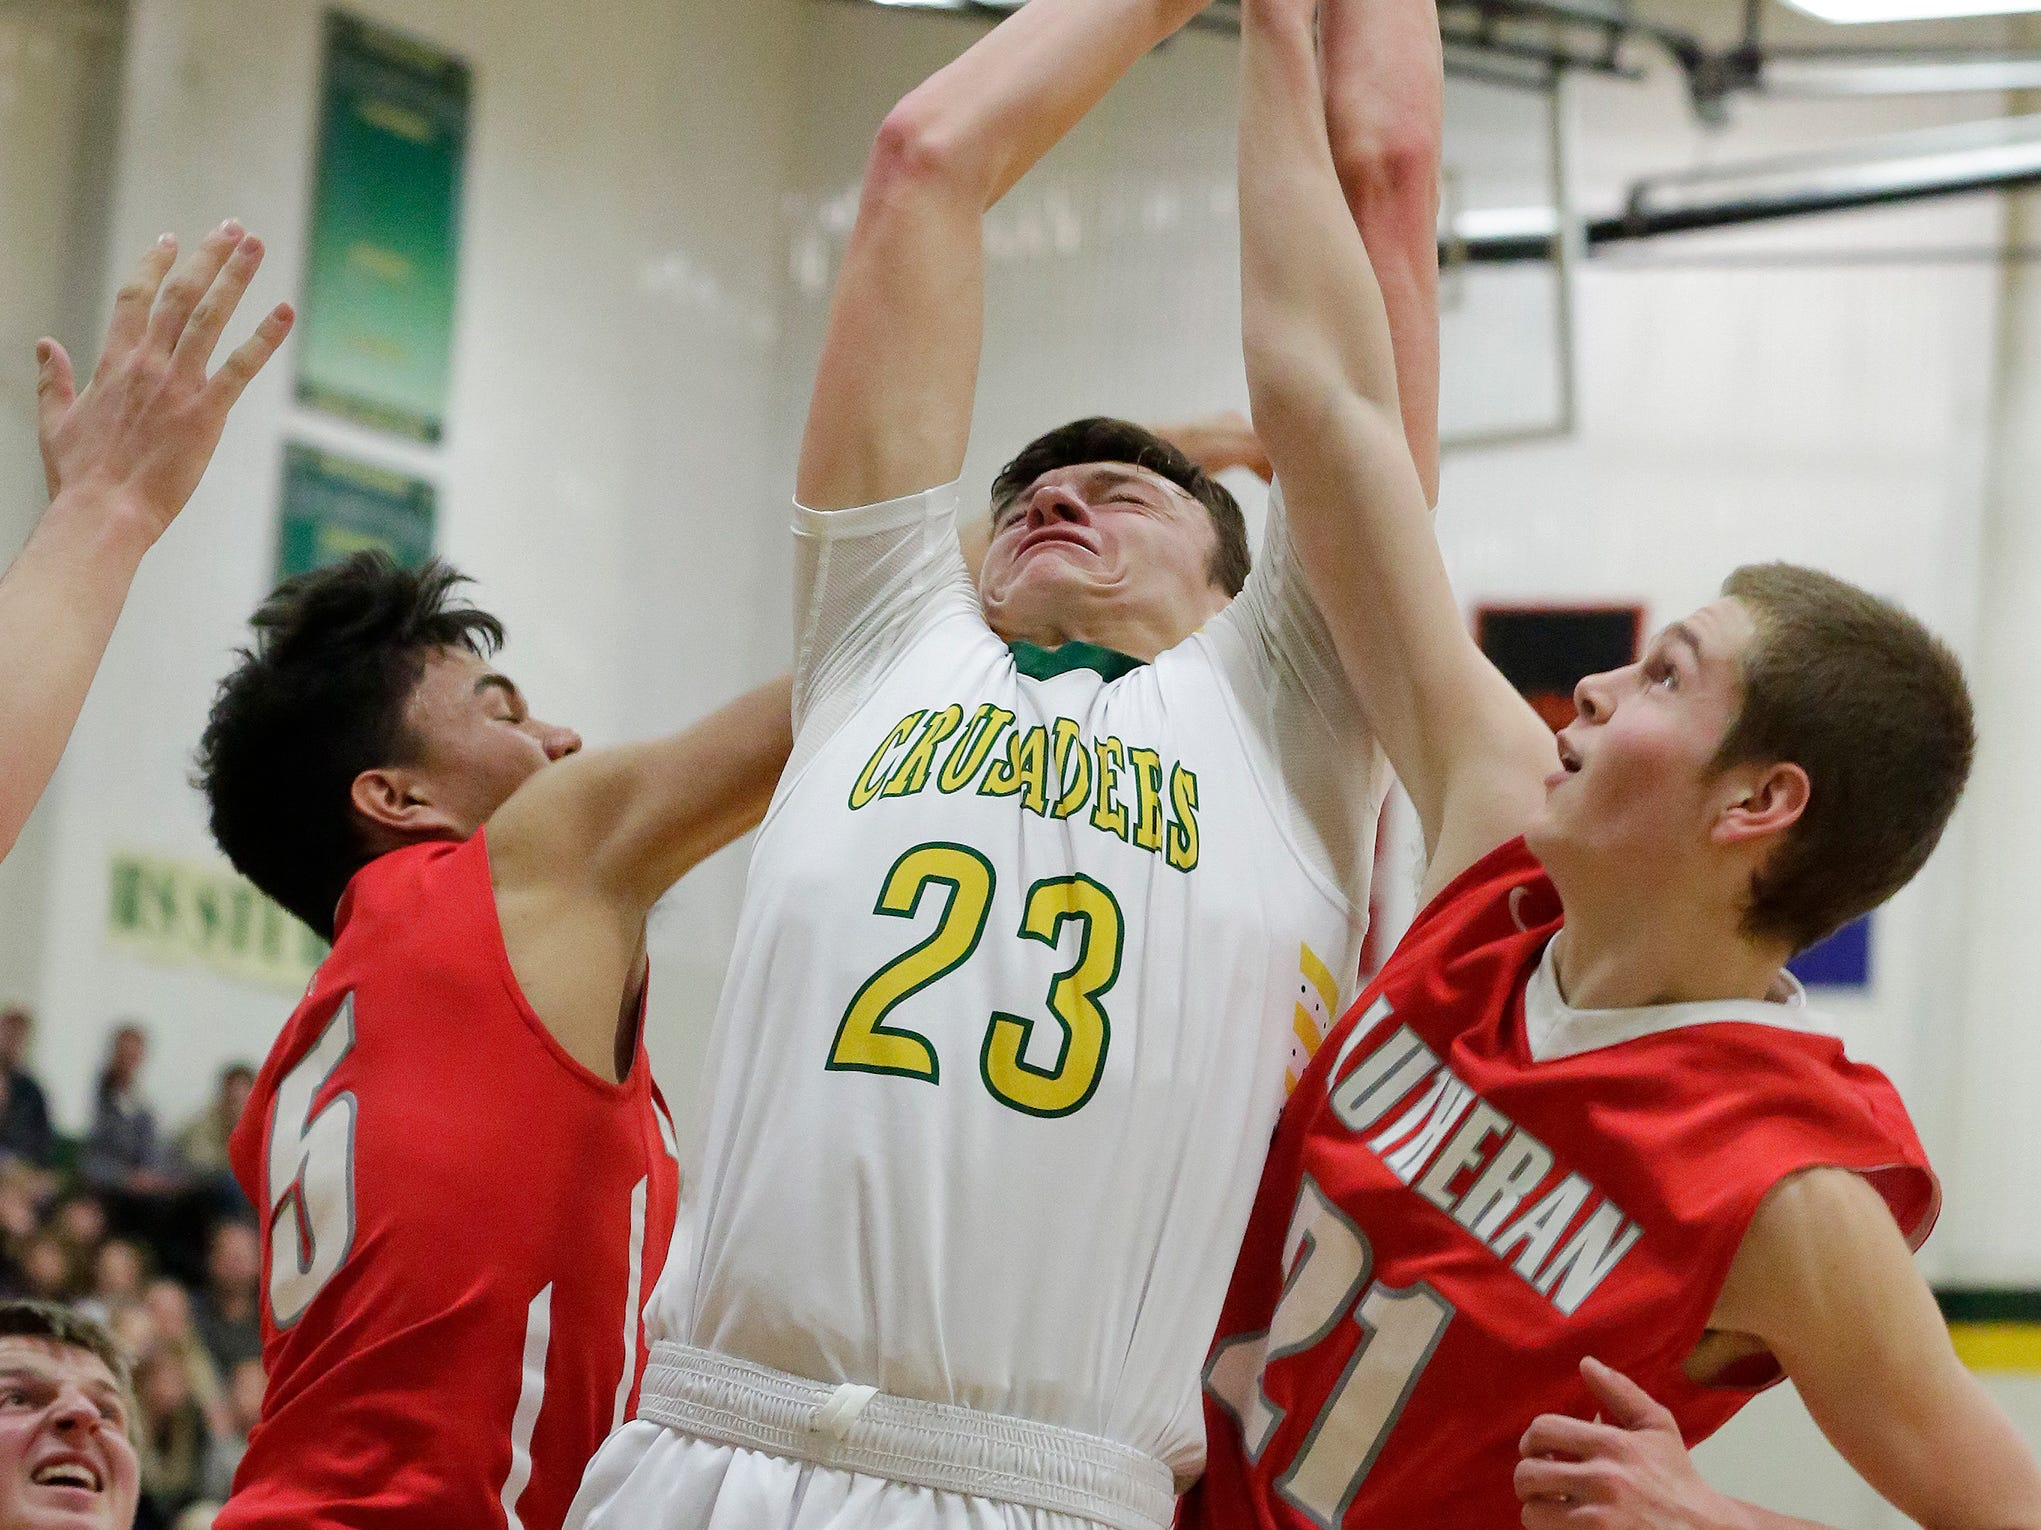 Sheboygan Lutheran's Jacob Ognacevic (23) is well guarded by Manitowoc Lutheran players while he attempts to shoot a shot, Friday, February 1, 2019, in Sheboygan, Wis.